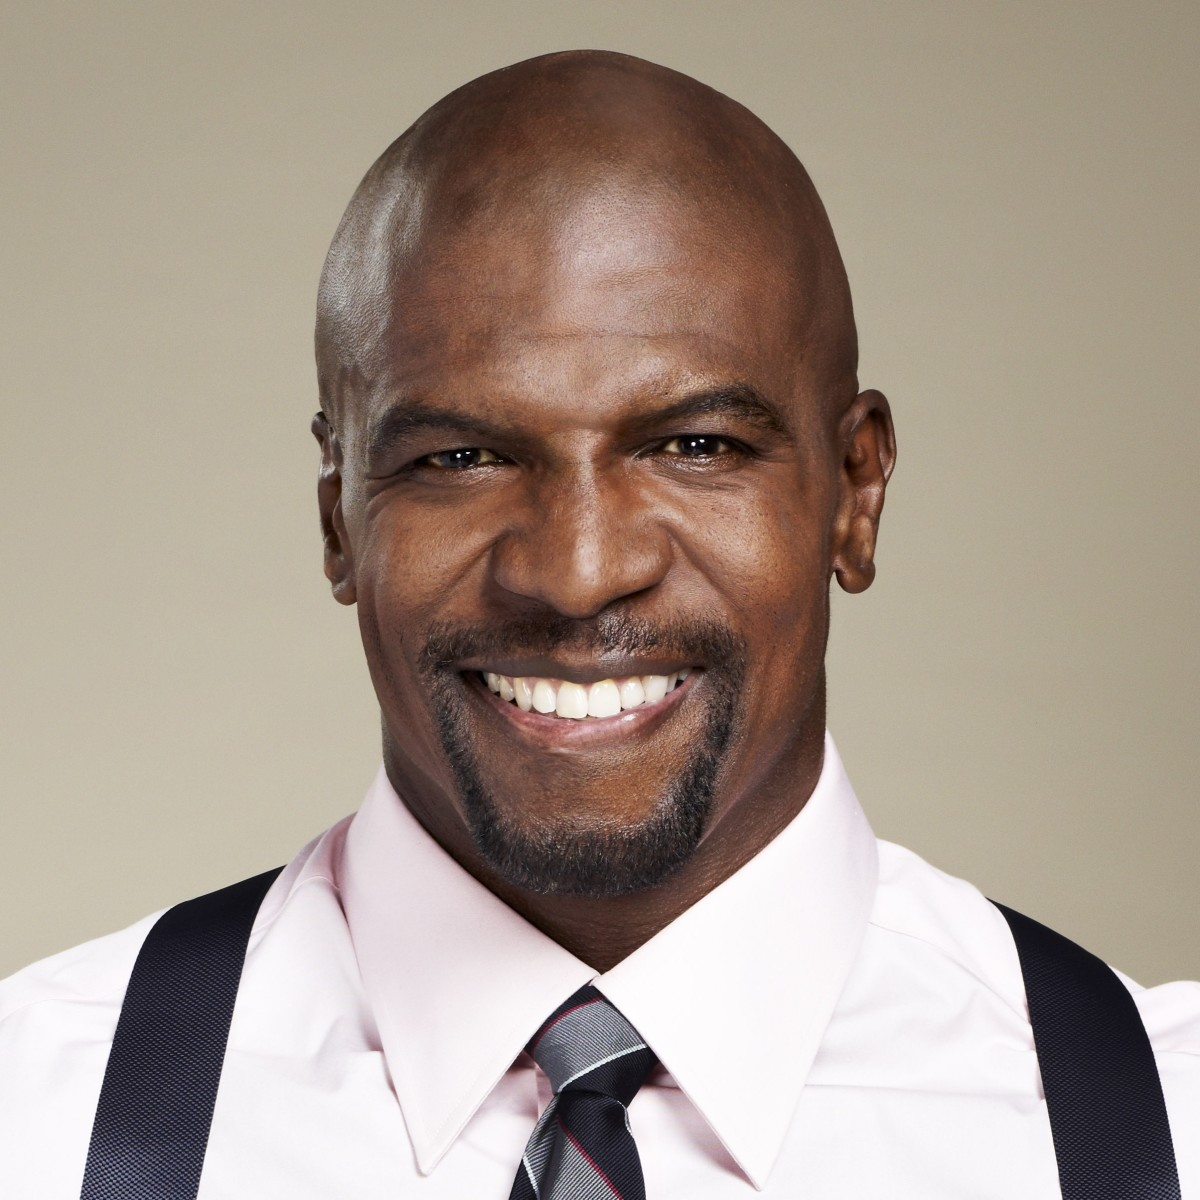 online store 58771 756b0 Terry Crews Biography - Biography